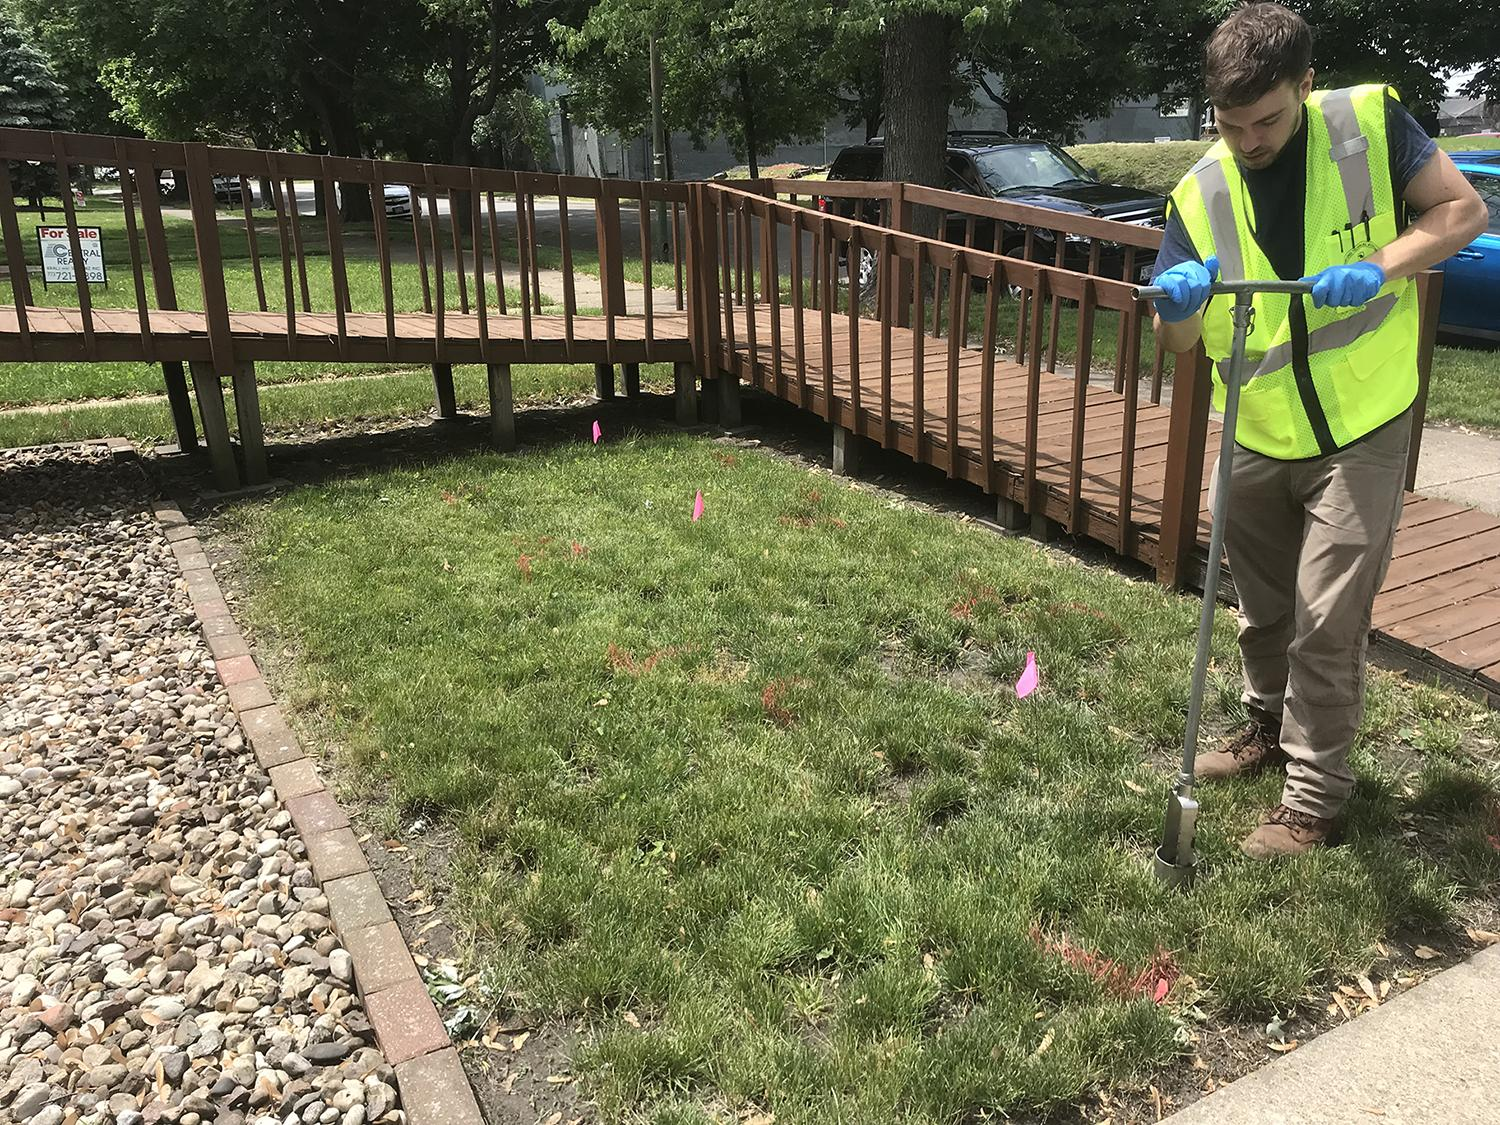 EPA workers began sampling residential yards near S.H. Bell last year to measure levels of manganese, lead and other heavy metals in the soil. (Courtesy U.S. Environmental Protection Agency)